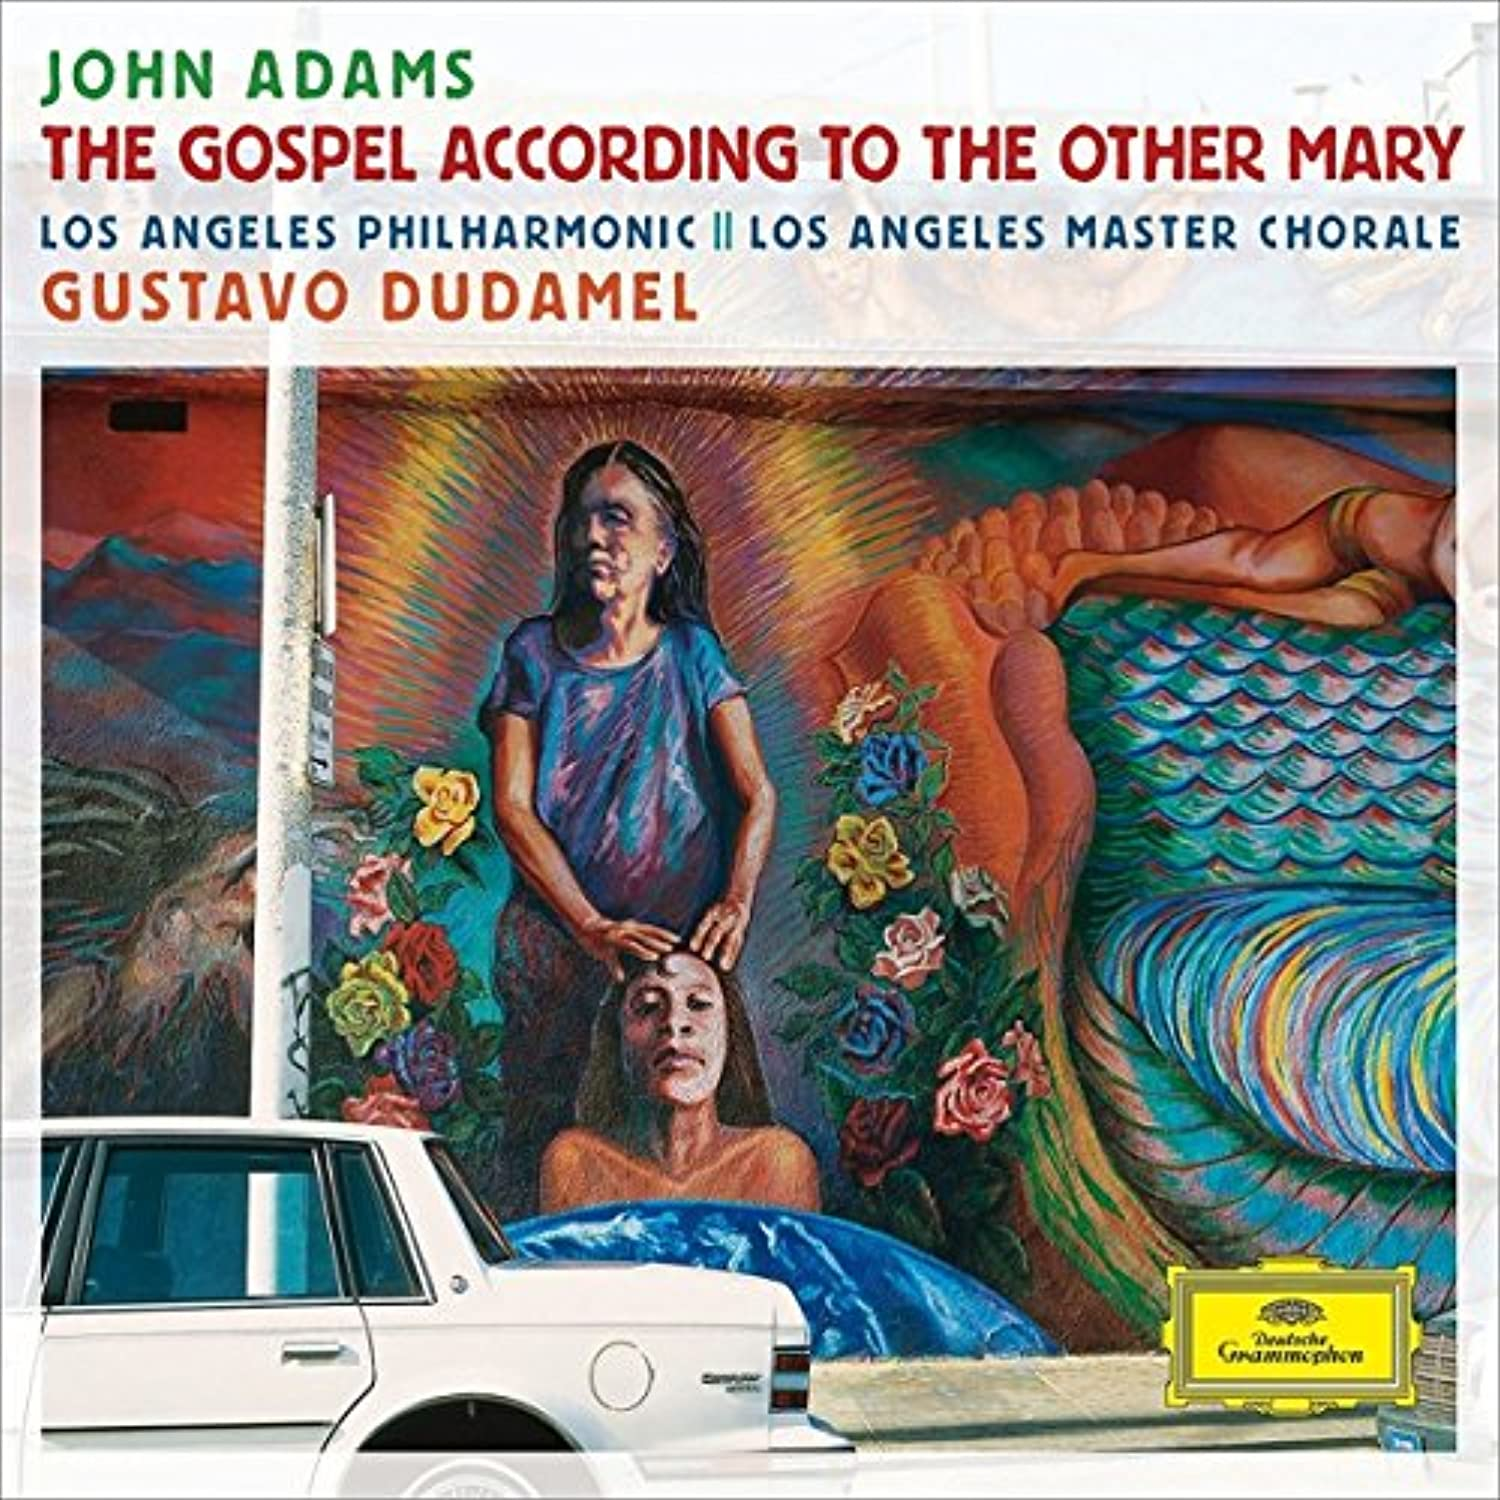 ADAMS J. The Gospel According To The Other Mary Symphonic Music dxqggn8057707